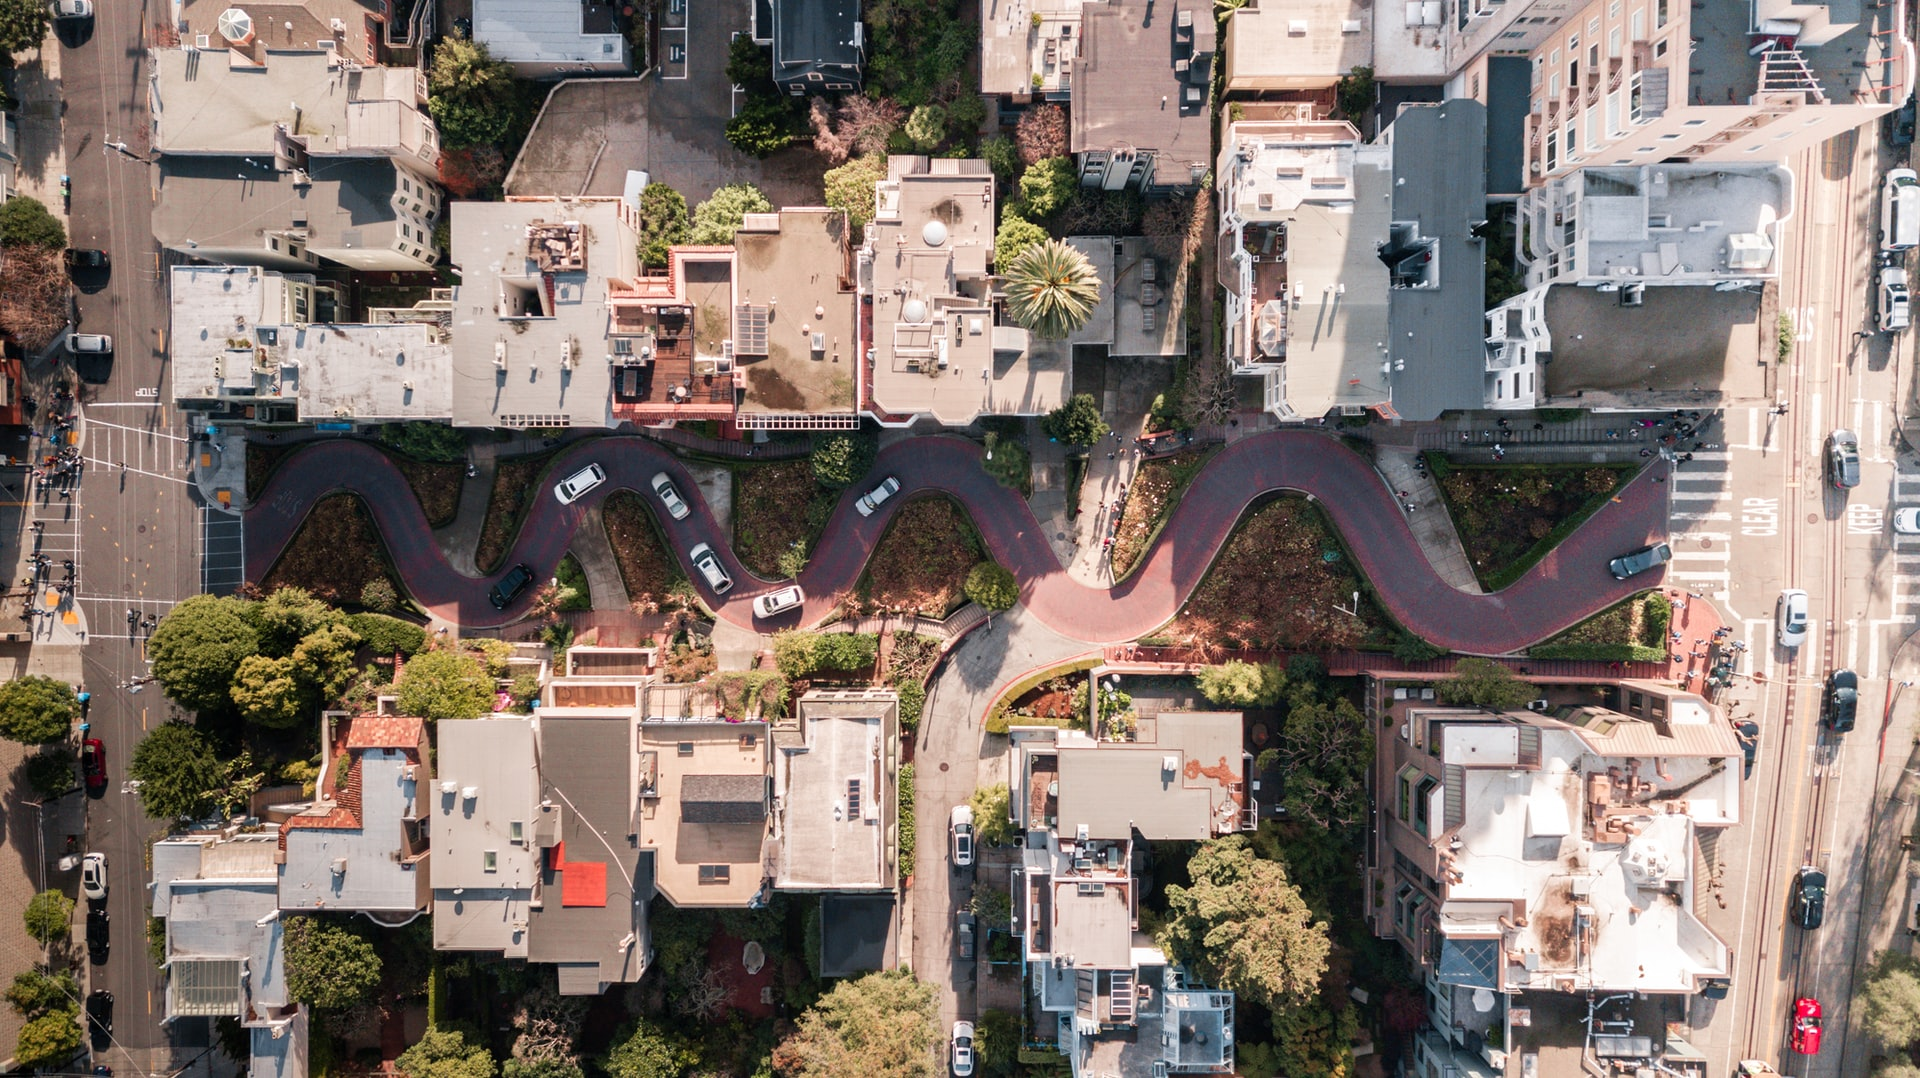 Aerial view of Lombard Street